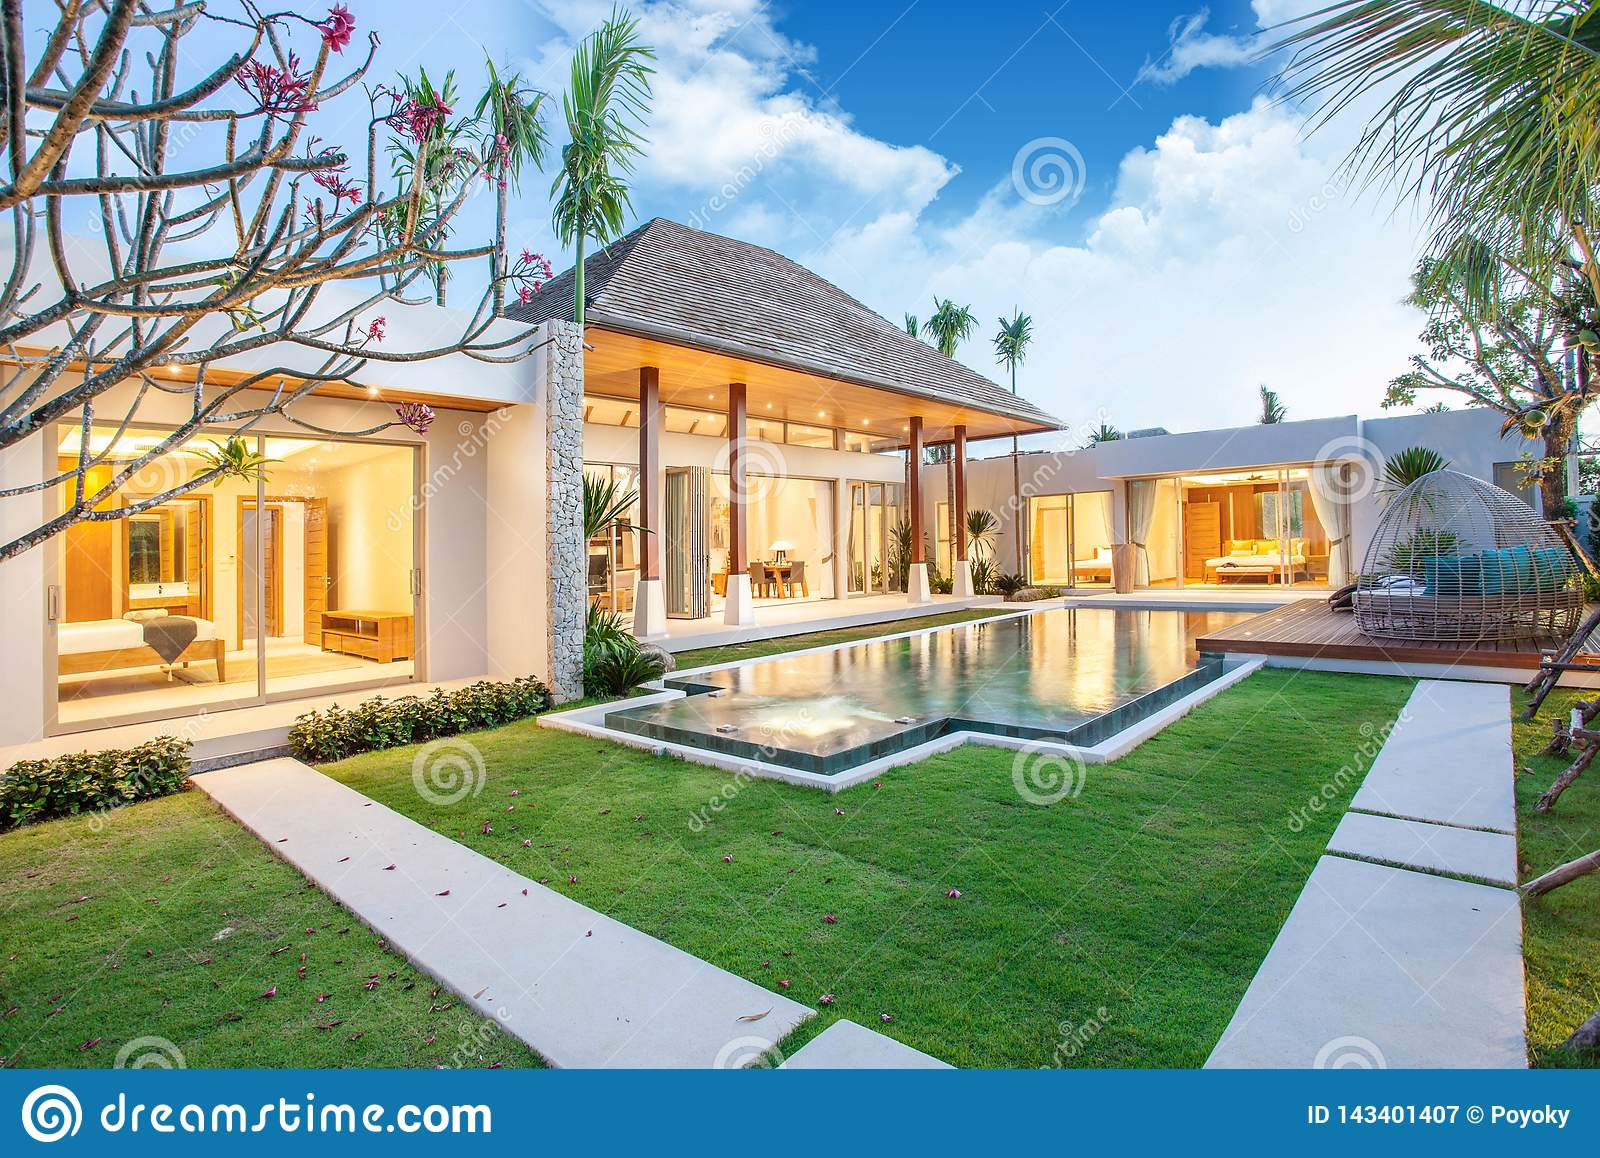 Interior And Exterior Design Of Pool Villa With Swimming Pool Of The House Or Home Building Stock Image Image Of Blue Leisure 143401407